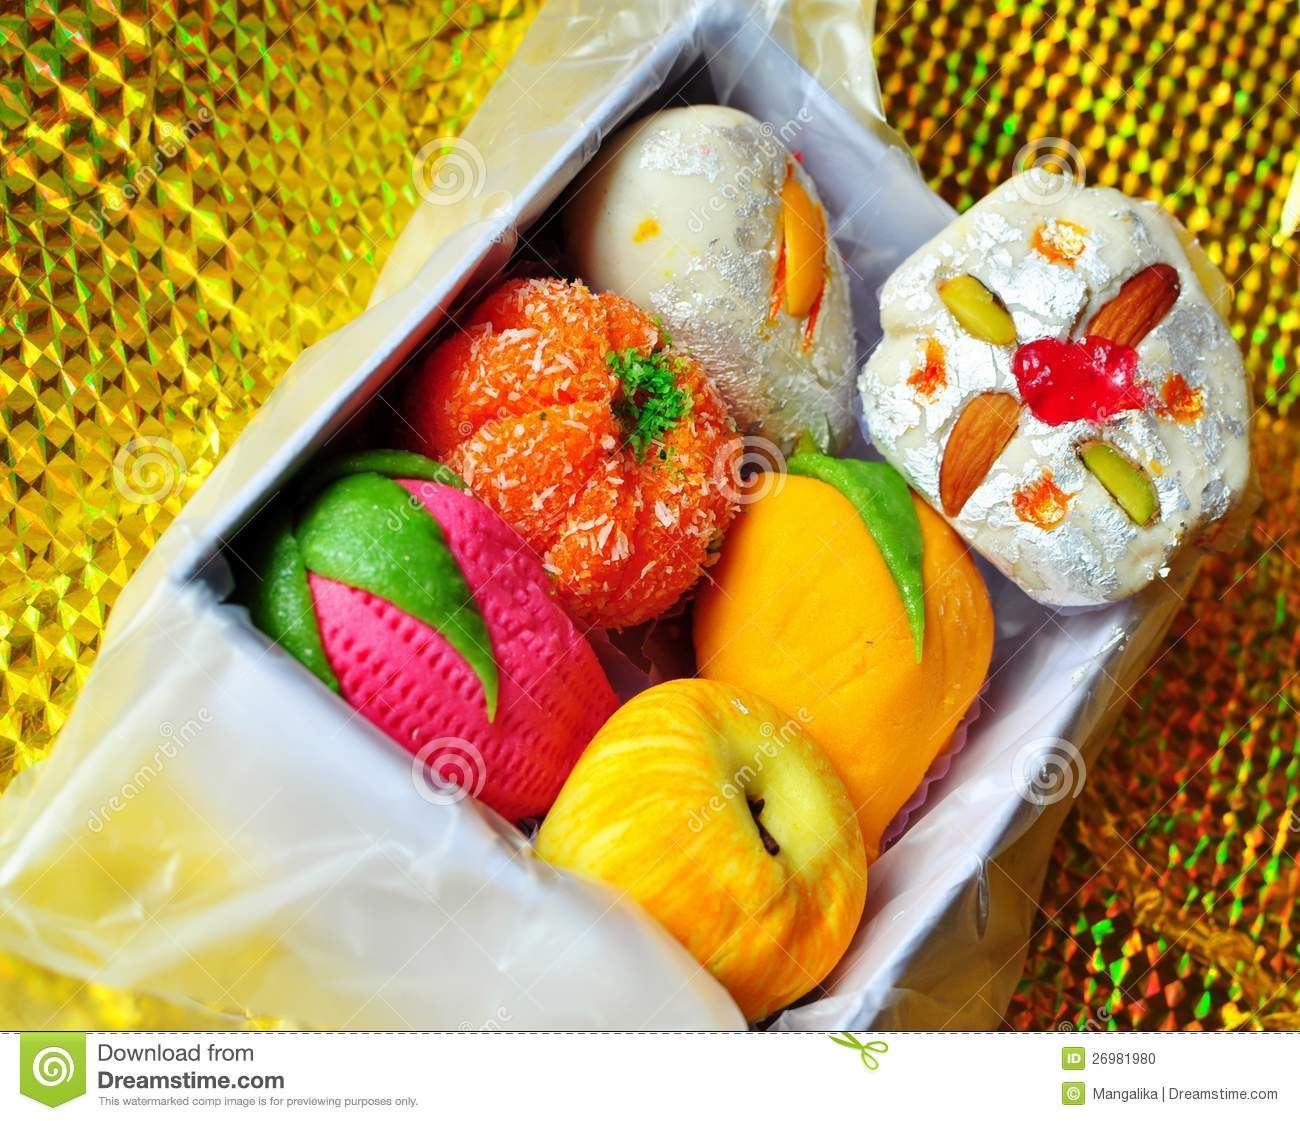 Box Of Colorful Homemade Diwali Sweets Diwali Sweets Indian Sweets Holi Sweets